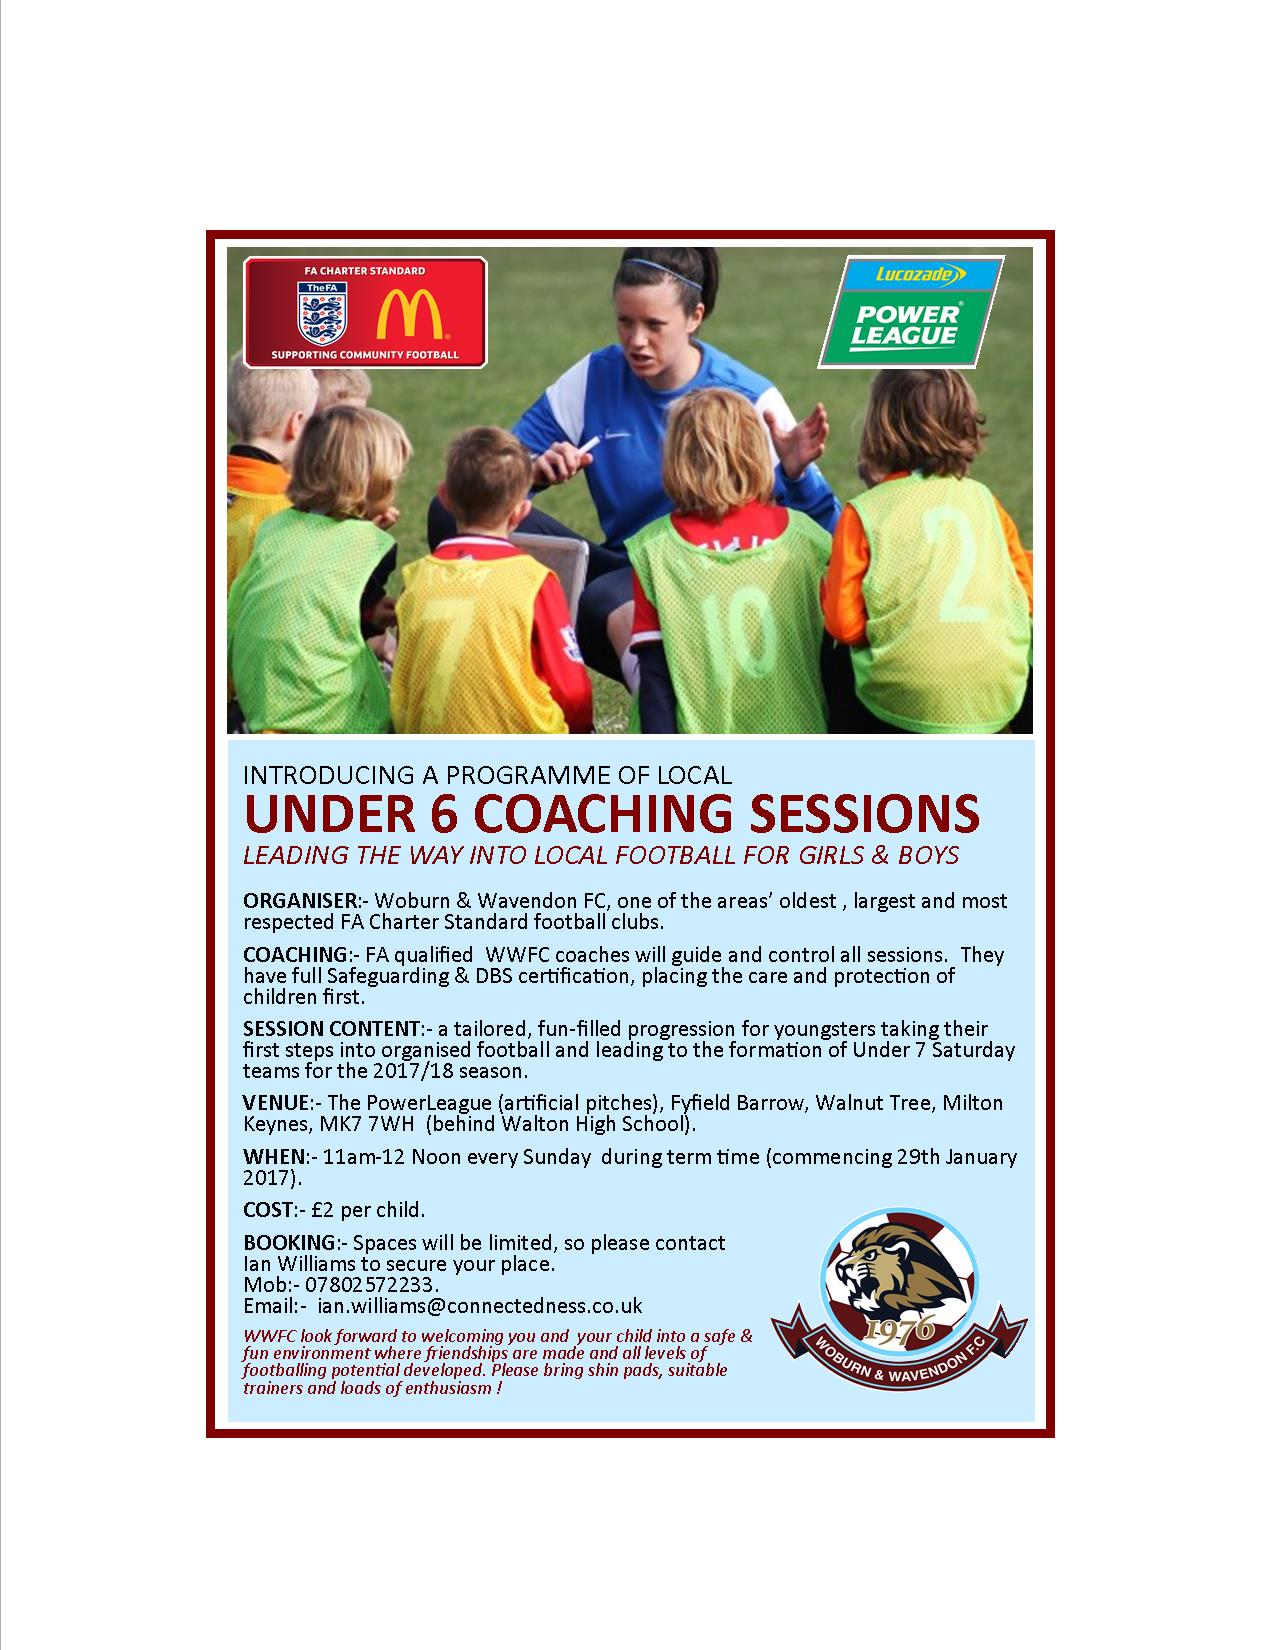 Under 6 Coaching sessions post thumbnail image